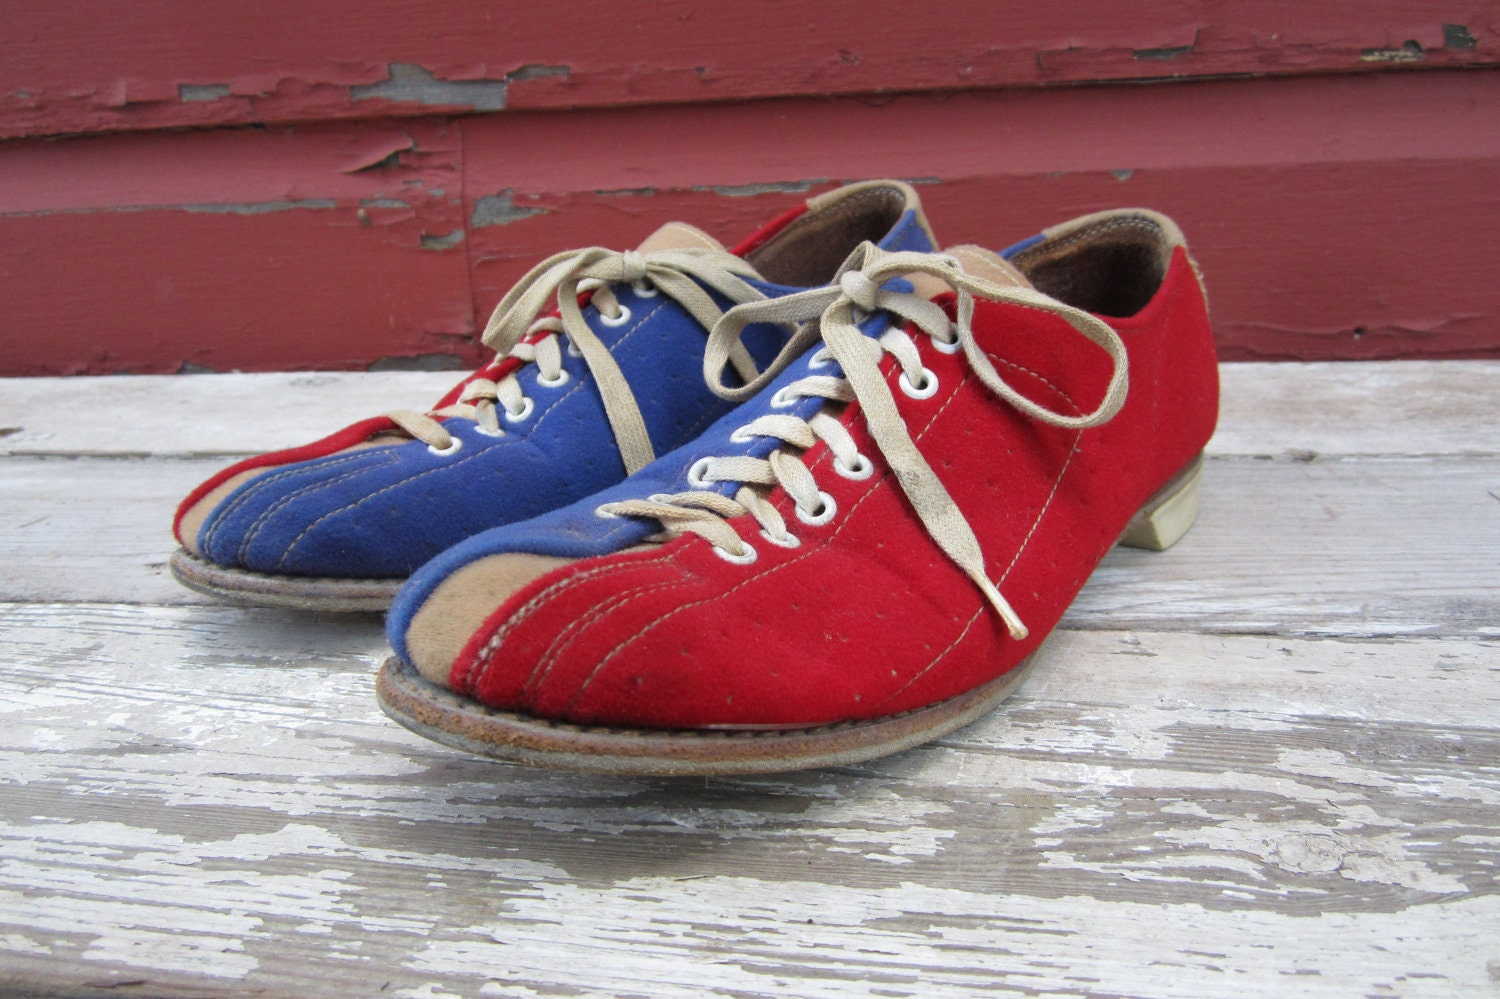 REDUCED Vintage Bowling Shoes AMF Red and Blue Retro Suede